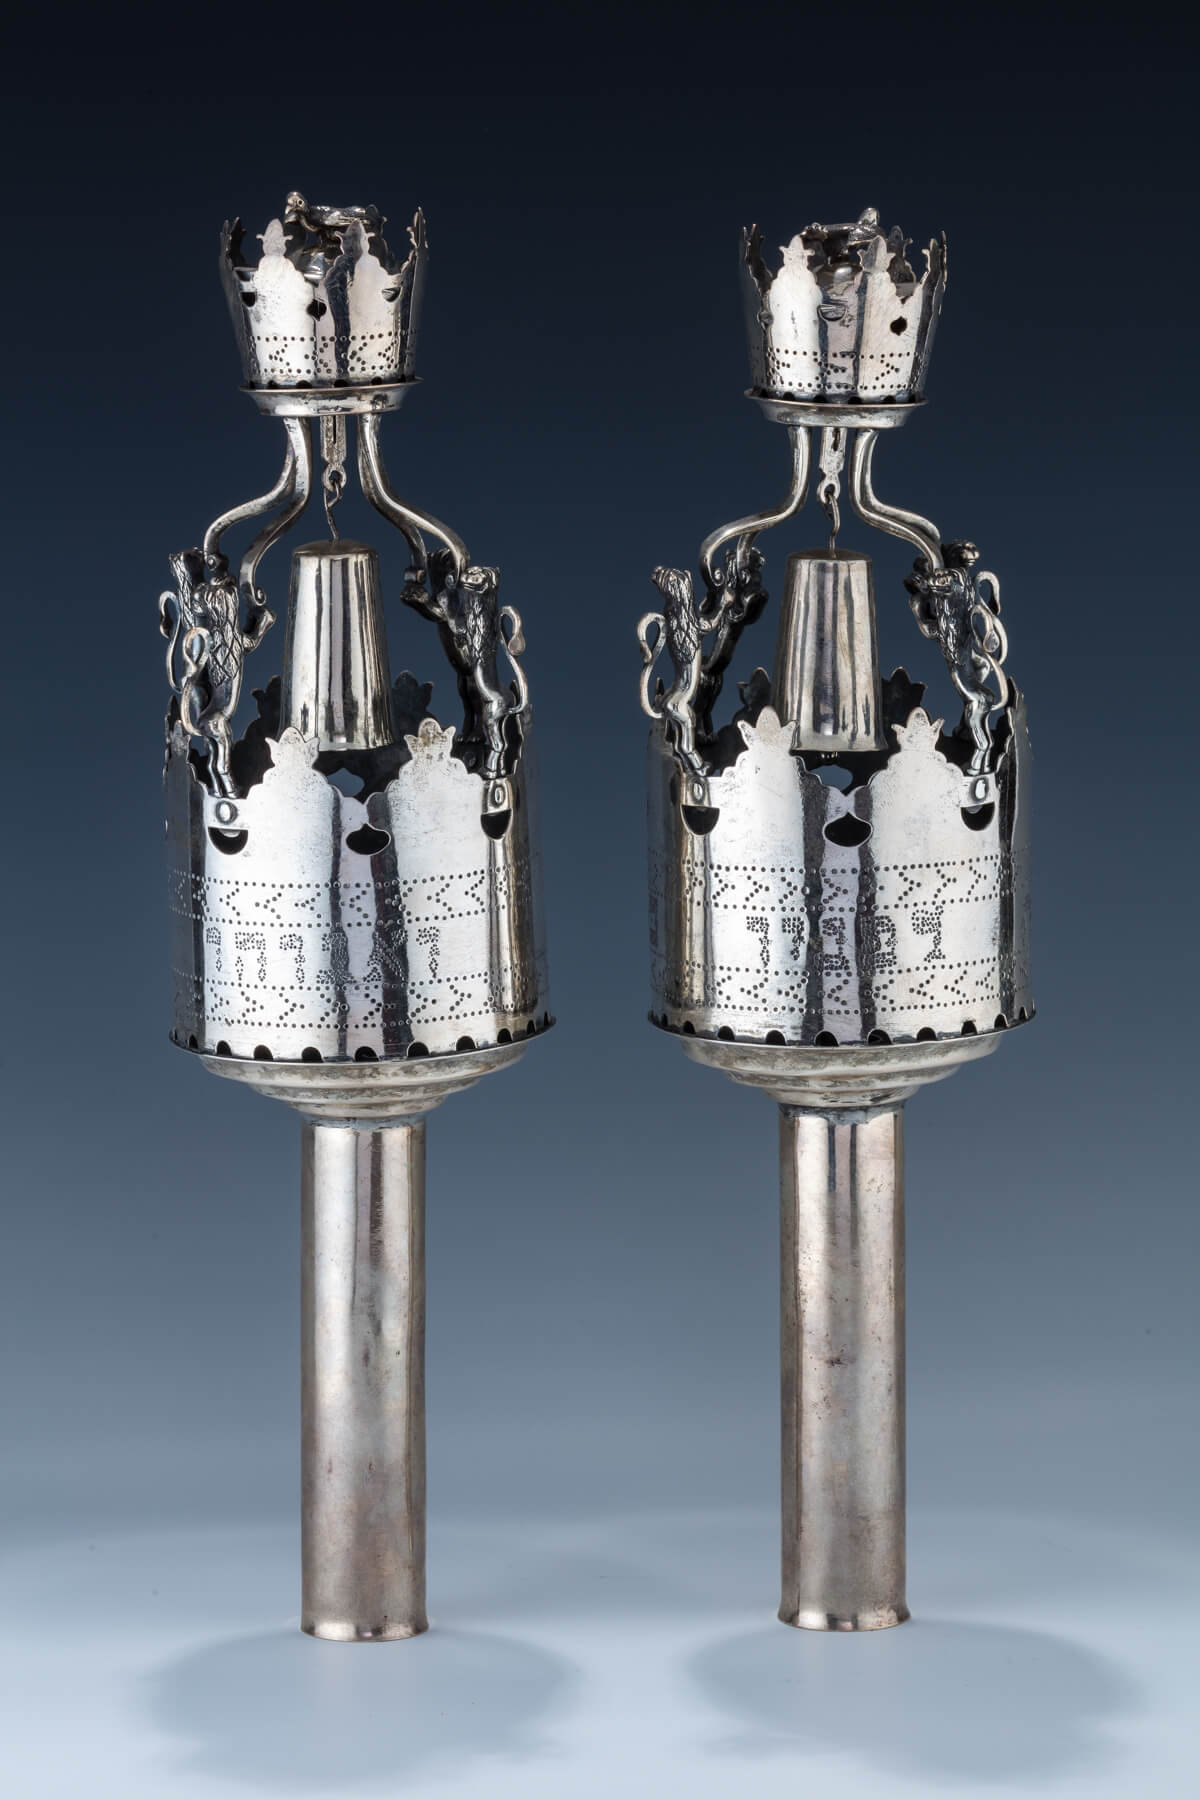 27. A Pair Of Large Silver Torah Finials